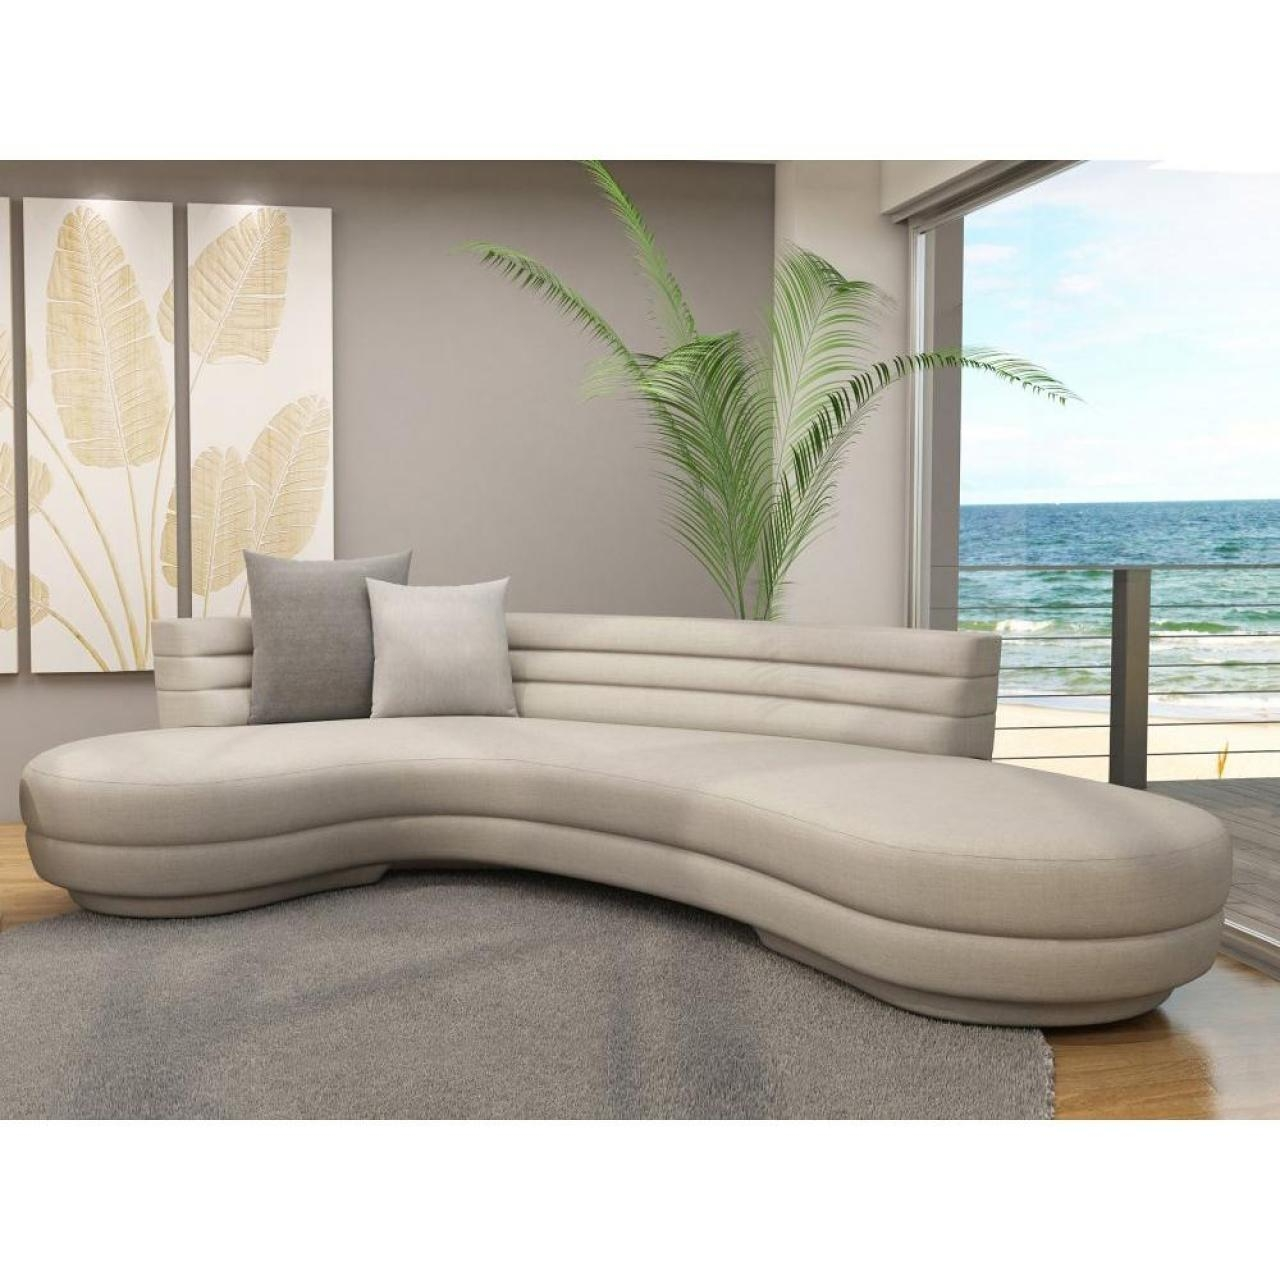 Beautiful Round Sectional Sofas – Sectional Sofas And Couches Throughout Round Sectional Sofa (View 20 of 20)